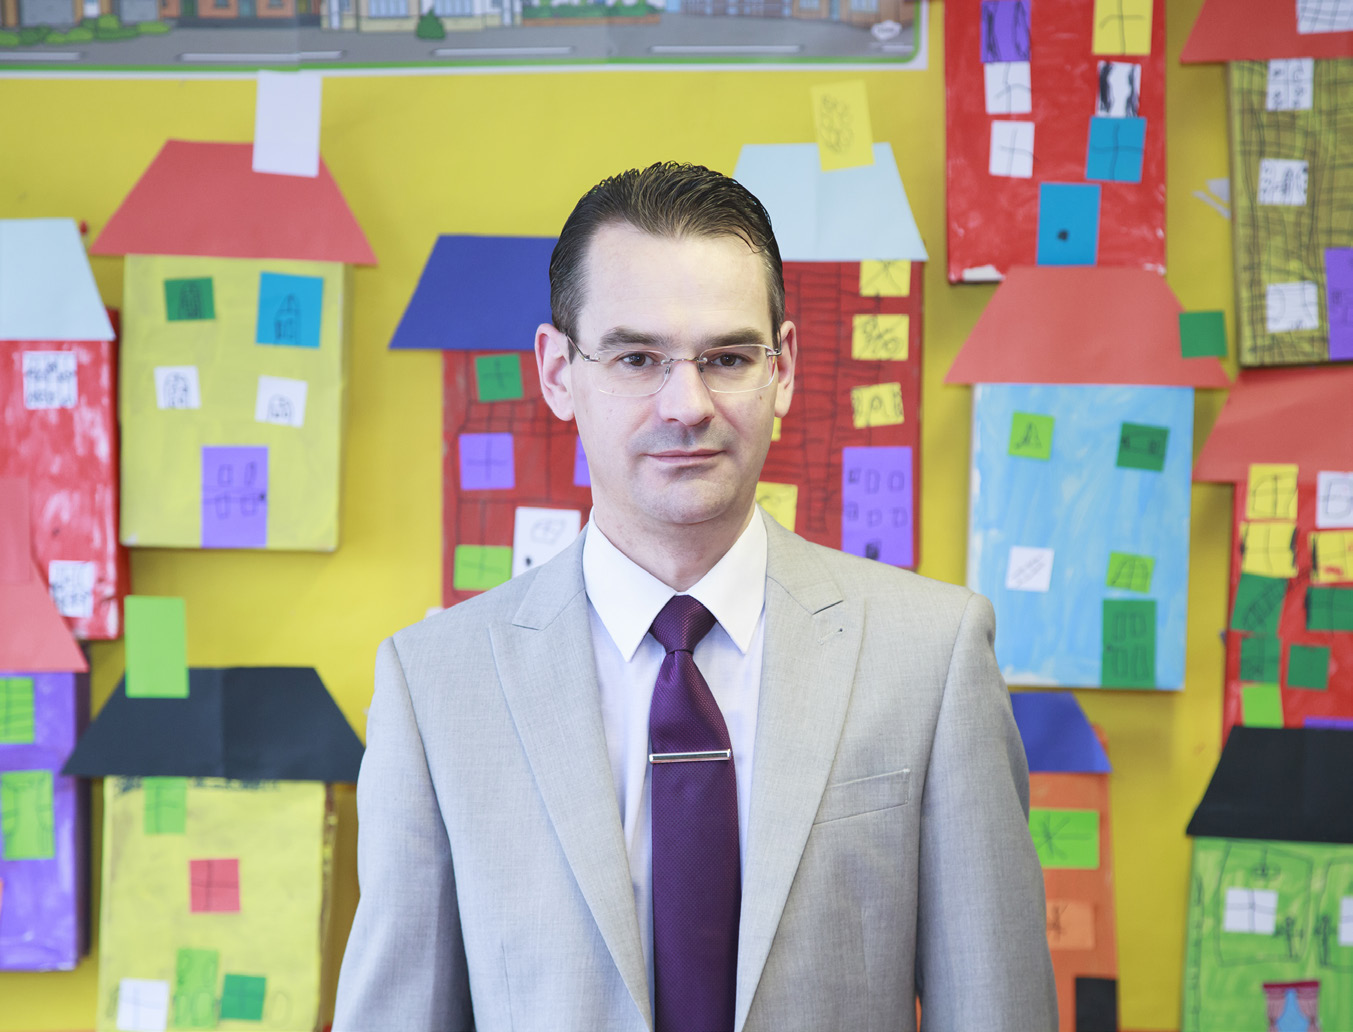 Dr Matthew Cottrell is set to leave Wellsway Multi Academy Trust